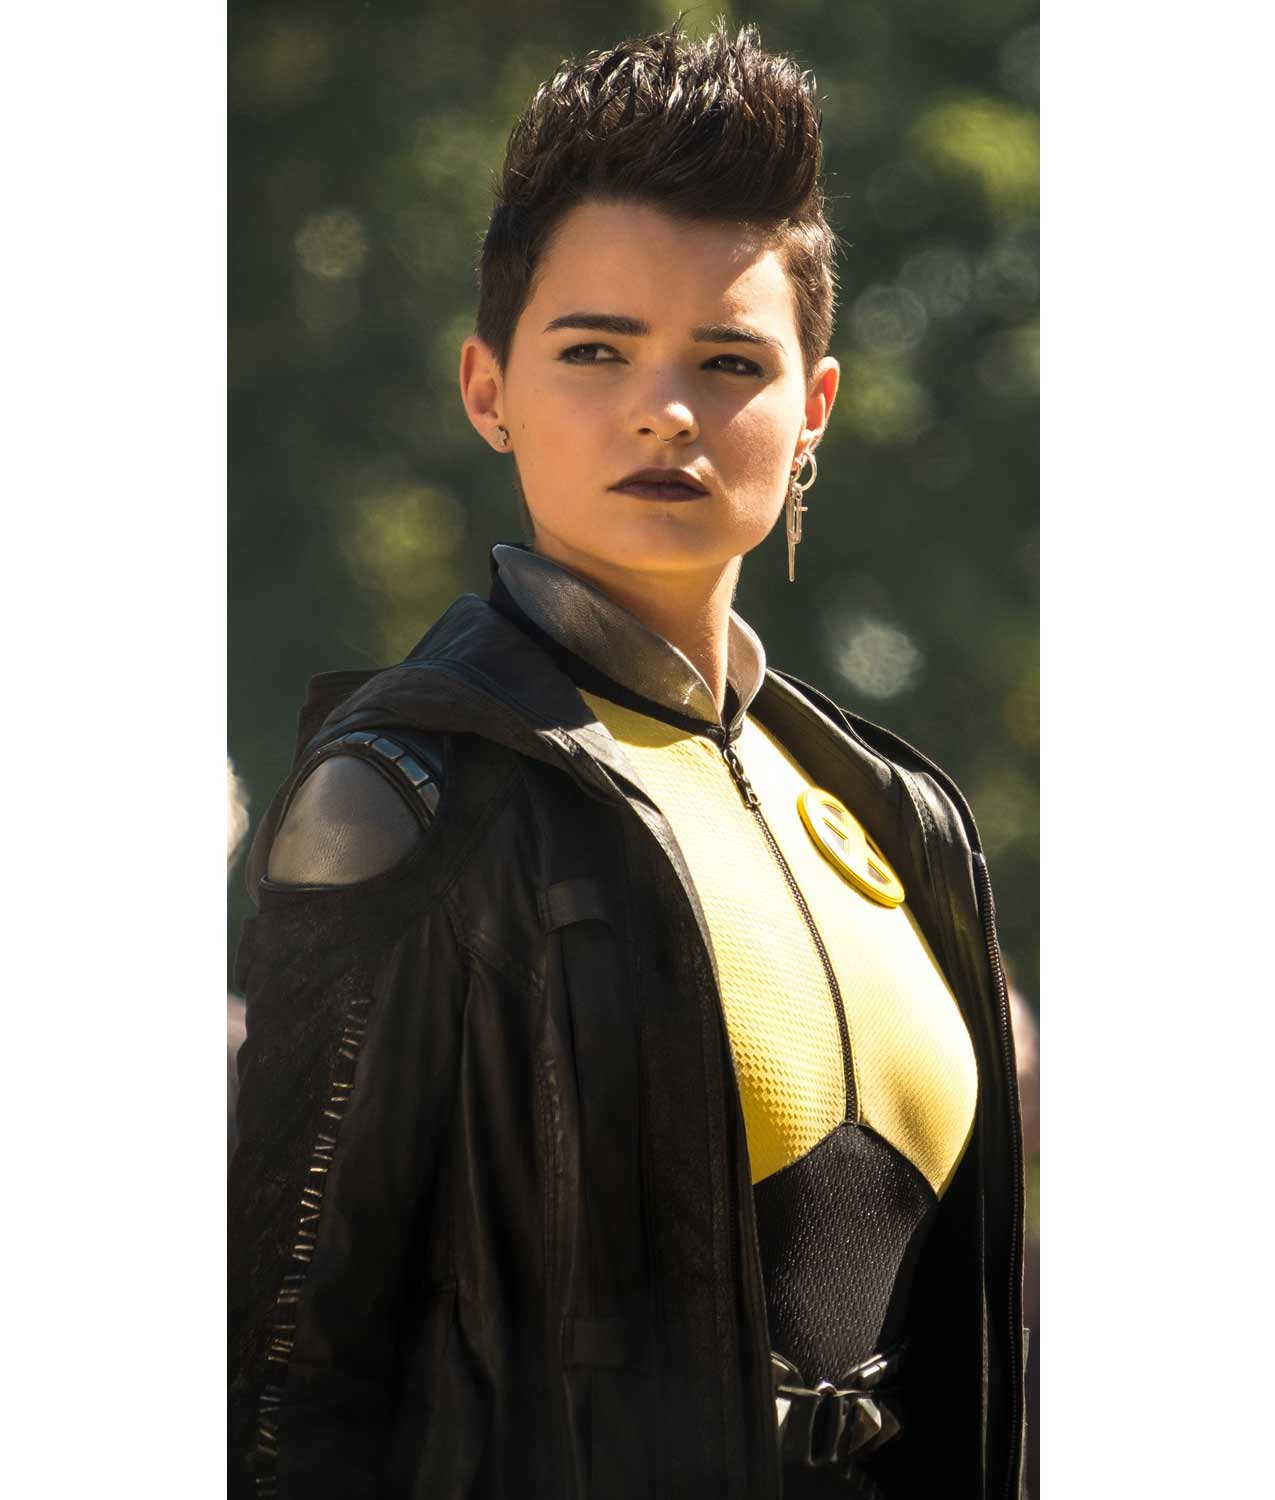 Brianna Hildebrand Deadpool 2 Negasonic Teenage Warhead Jacket